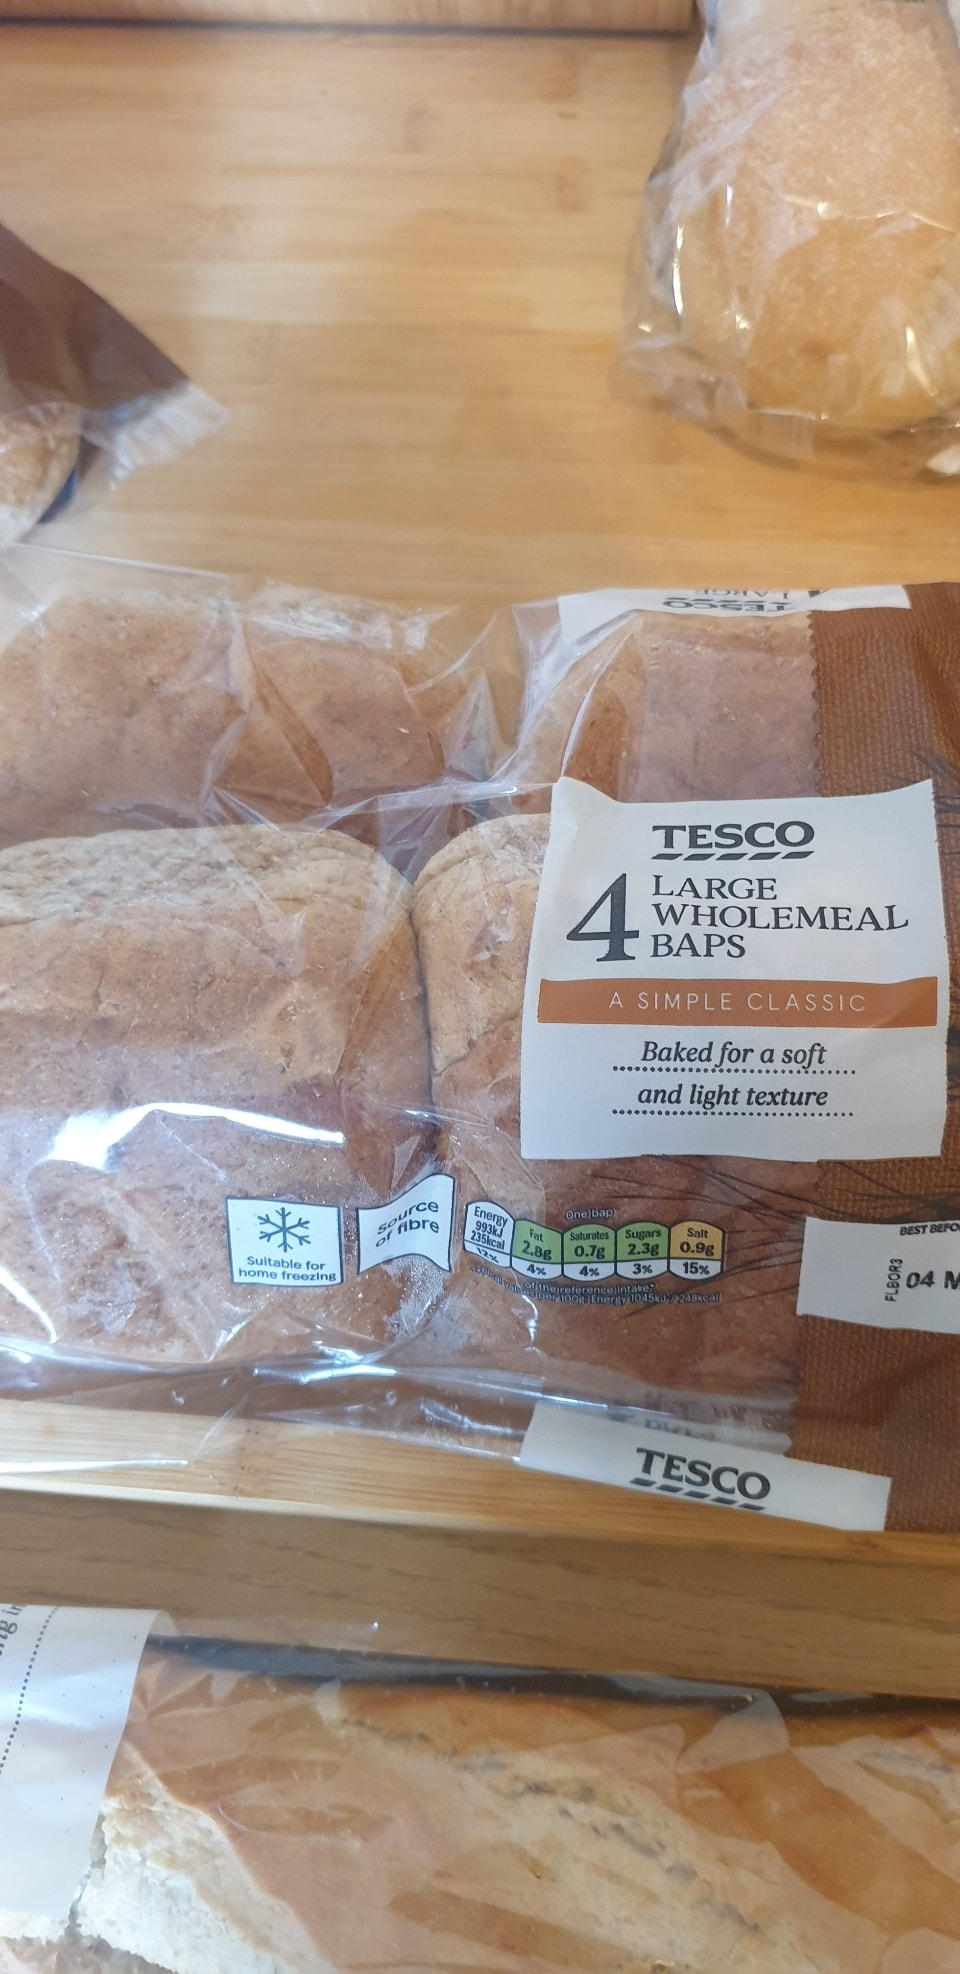 4 pack of large wholemeal baps